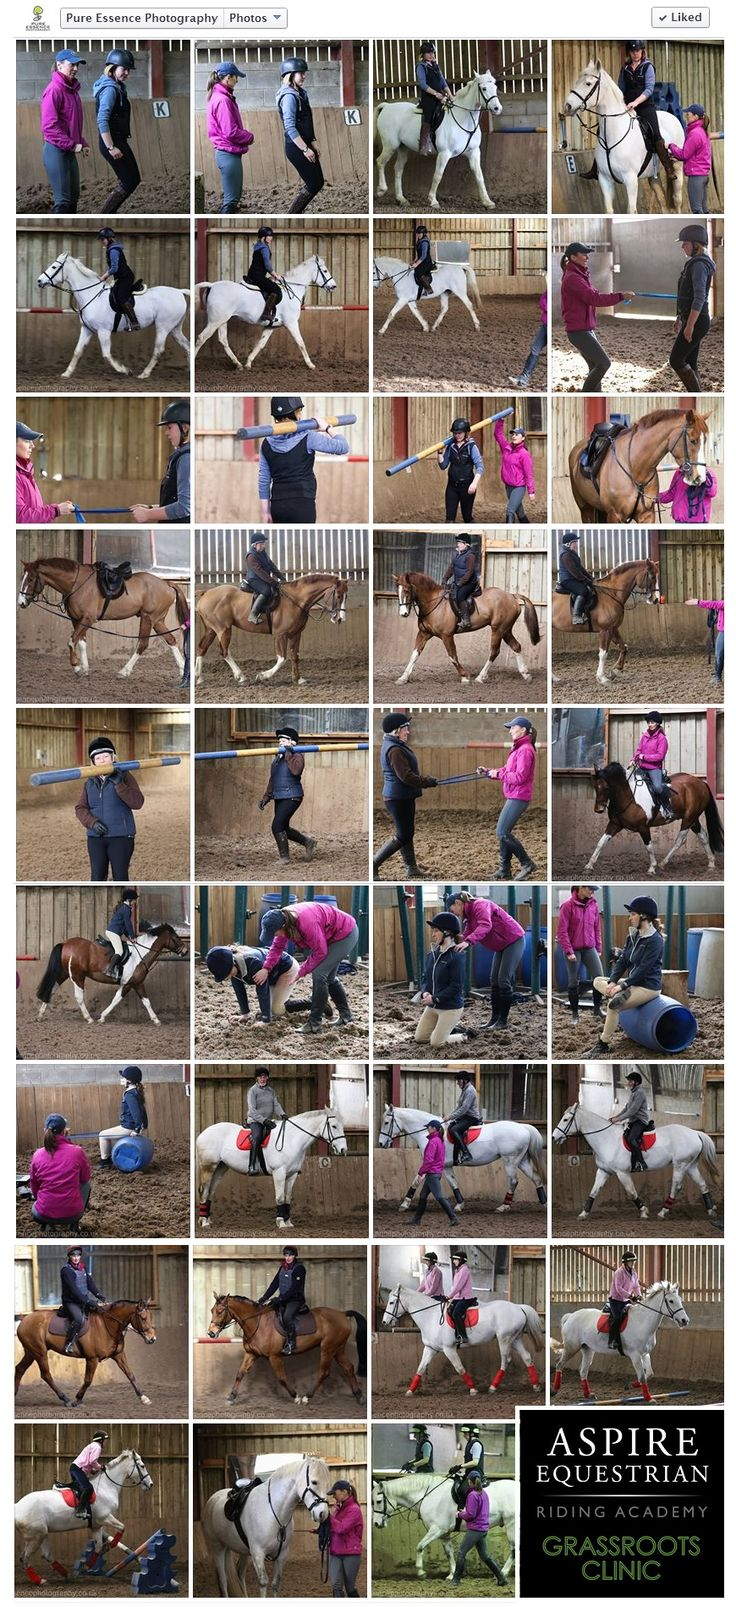 Aspire Grassroots Clinic at Lindrick Livery, North Yorkshire; 15-16 March 2014 - Photo Report by Pure Essence Photography